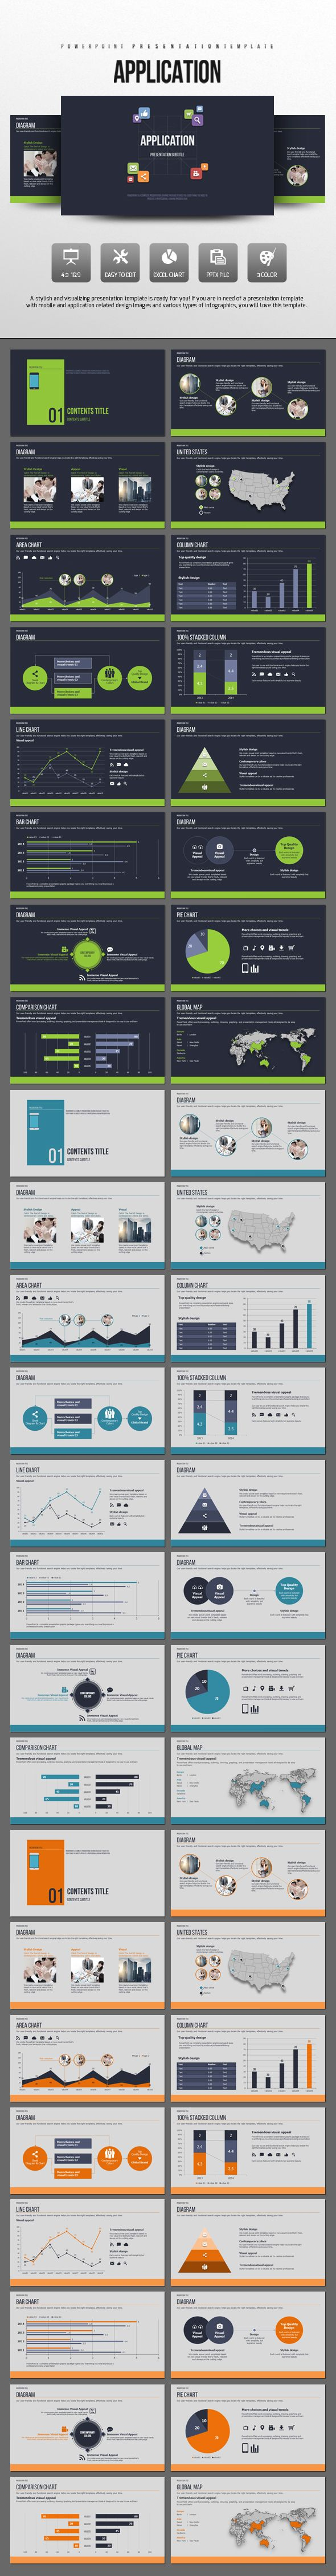 44 best presentation images on Pinterest | Ppt design, Charts and ...